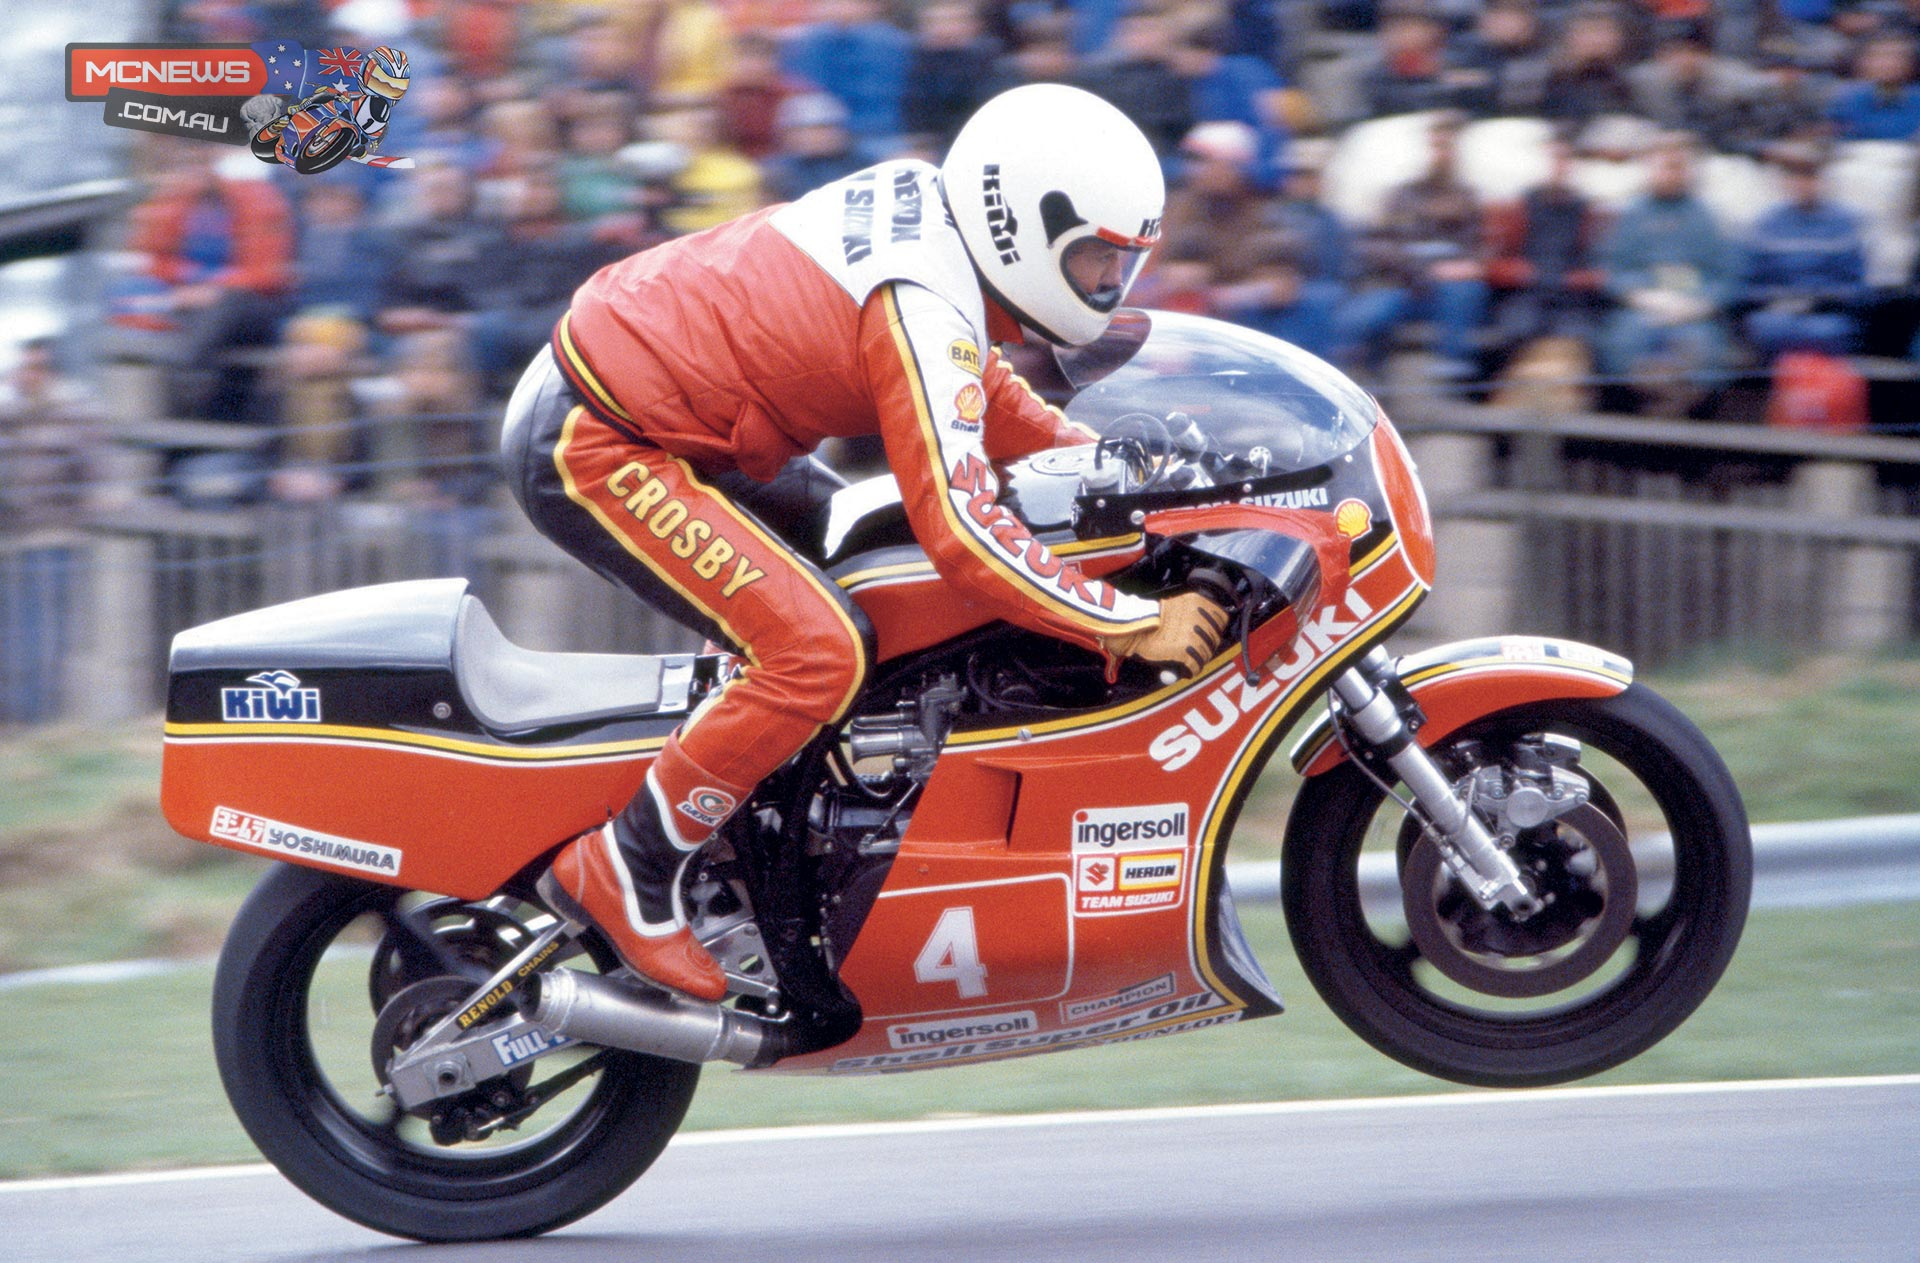 Graeme Crosby will ride the original XR69 Suzuki that he won the 1980 & 1981 World Formula One Championships on at the 2014 Classic TT